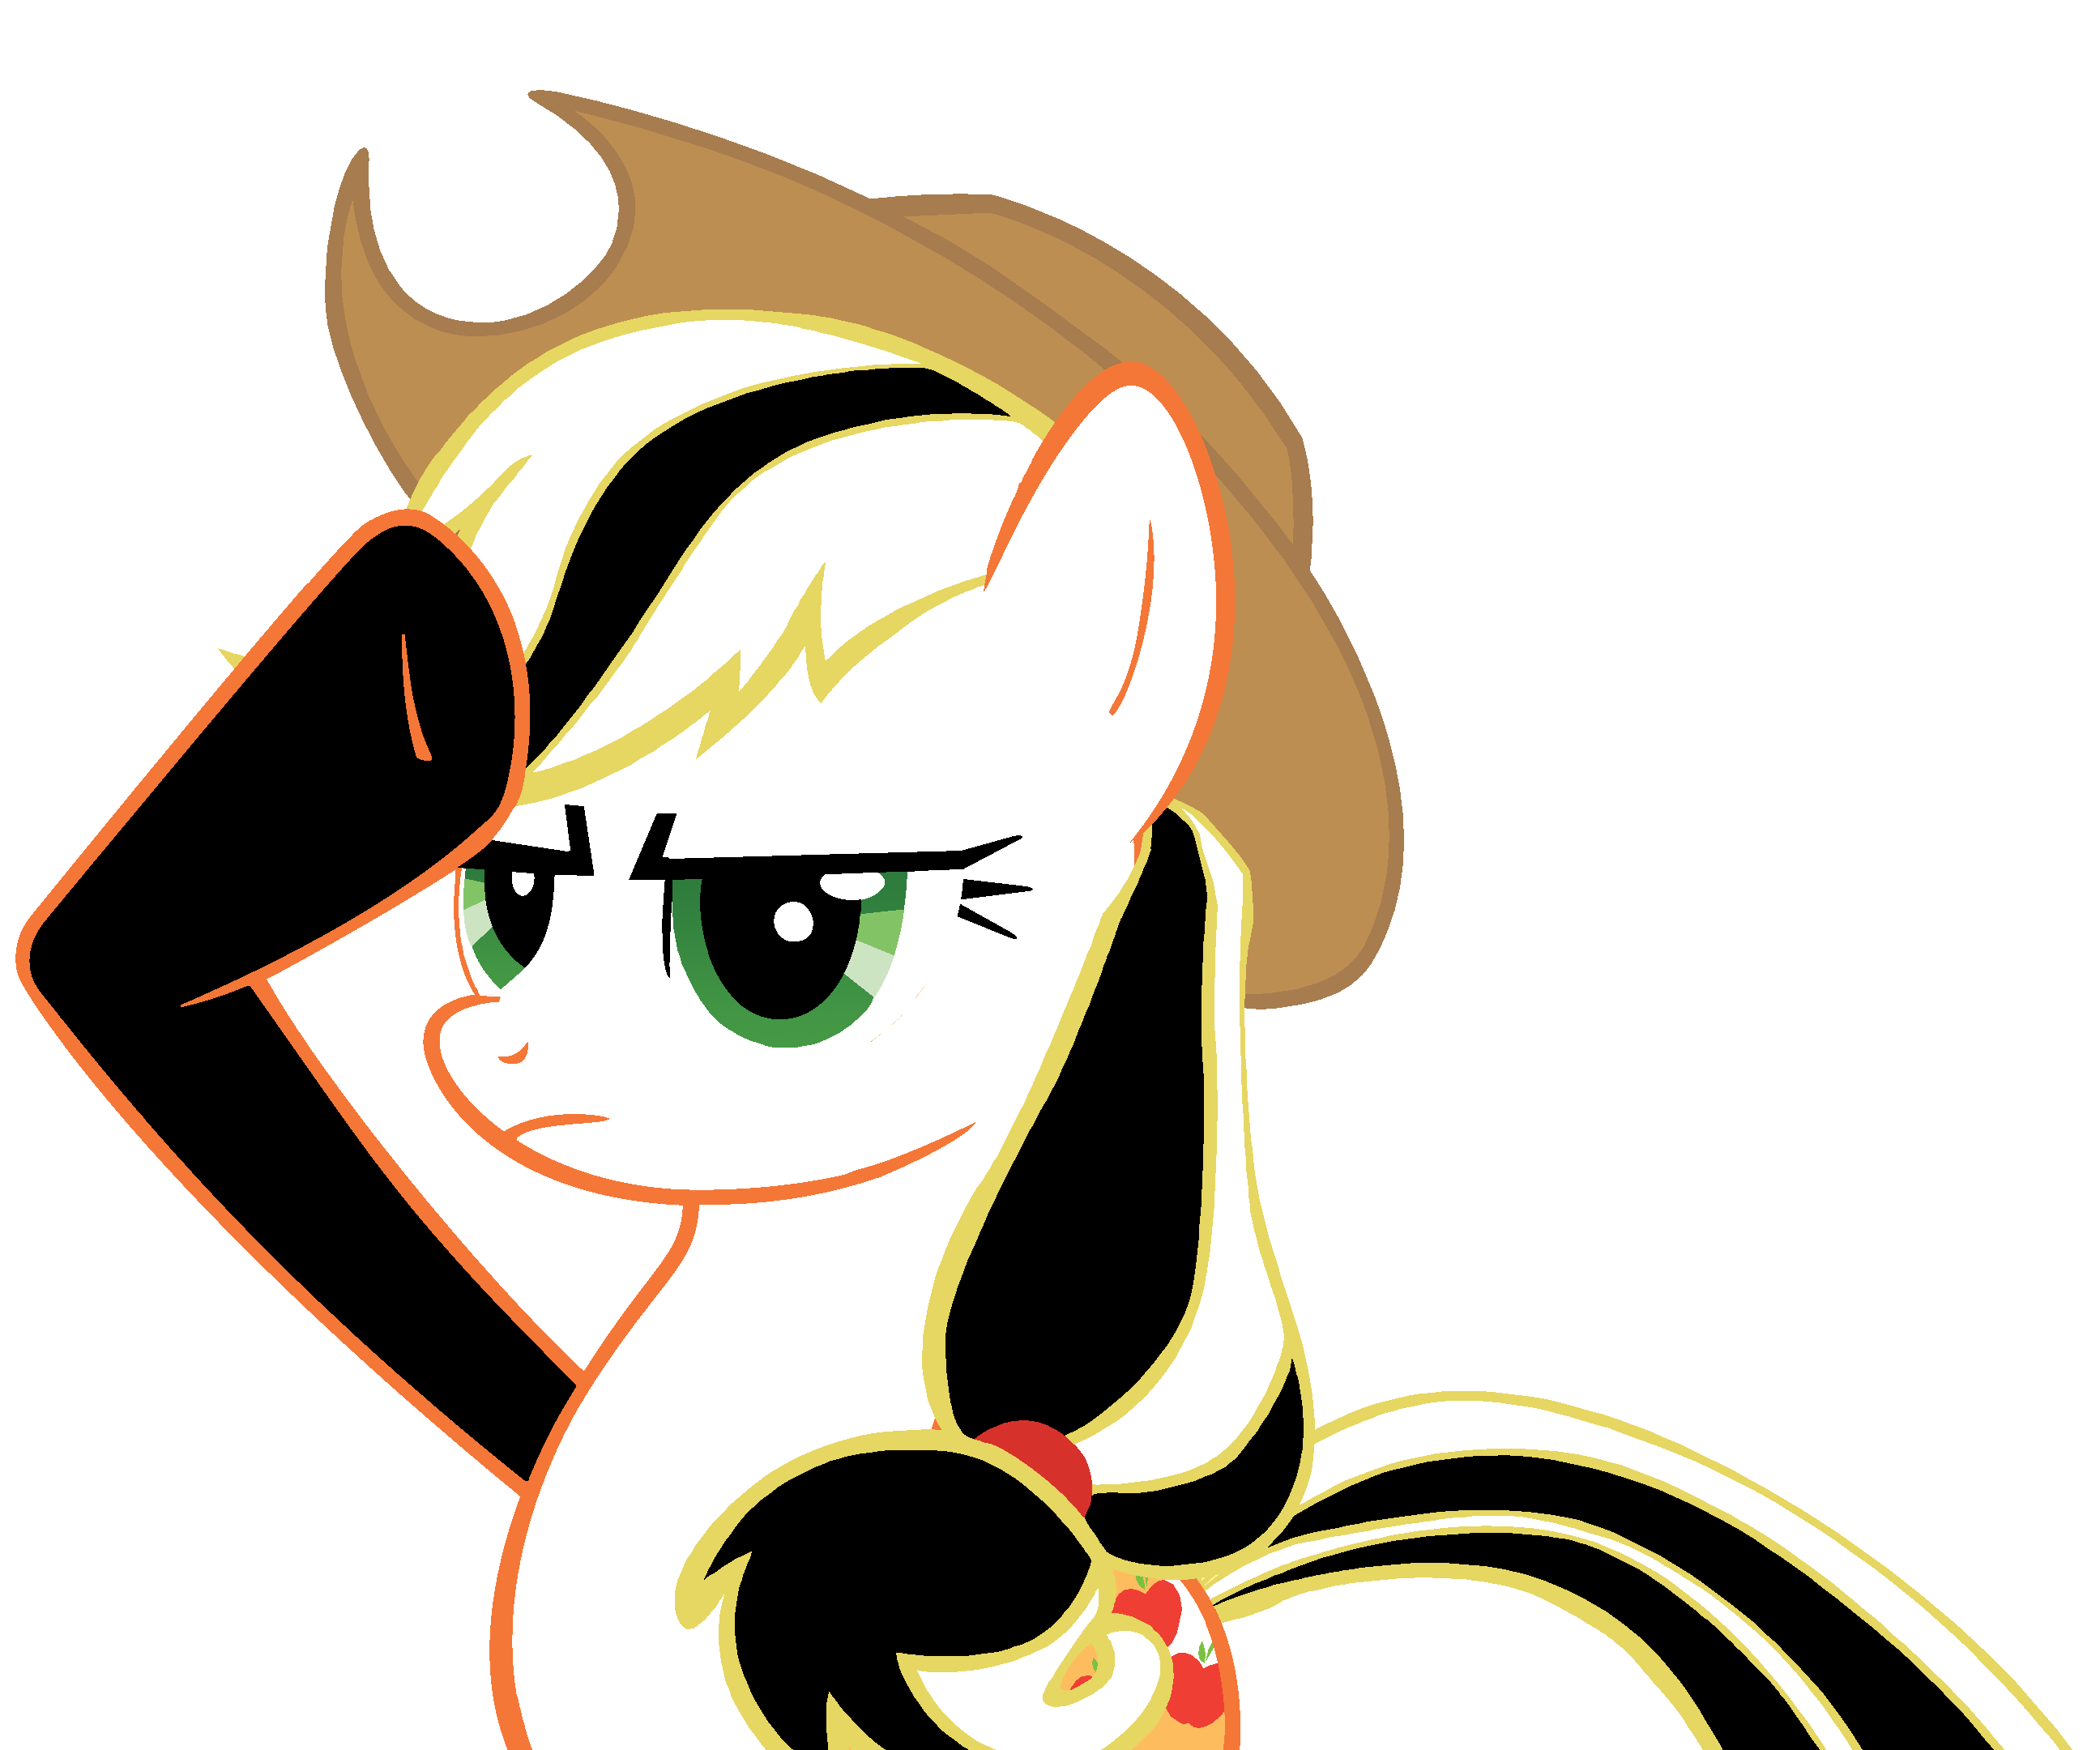 Black and White of Applejack Salutes | MLP (My Little Pony ...